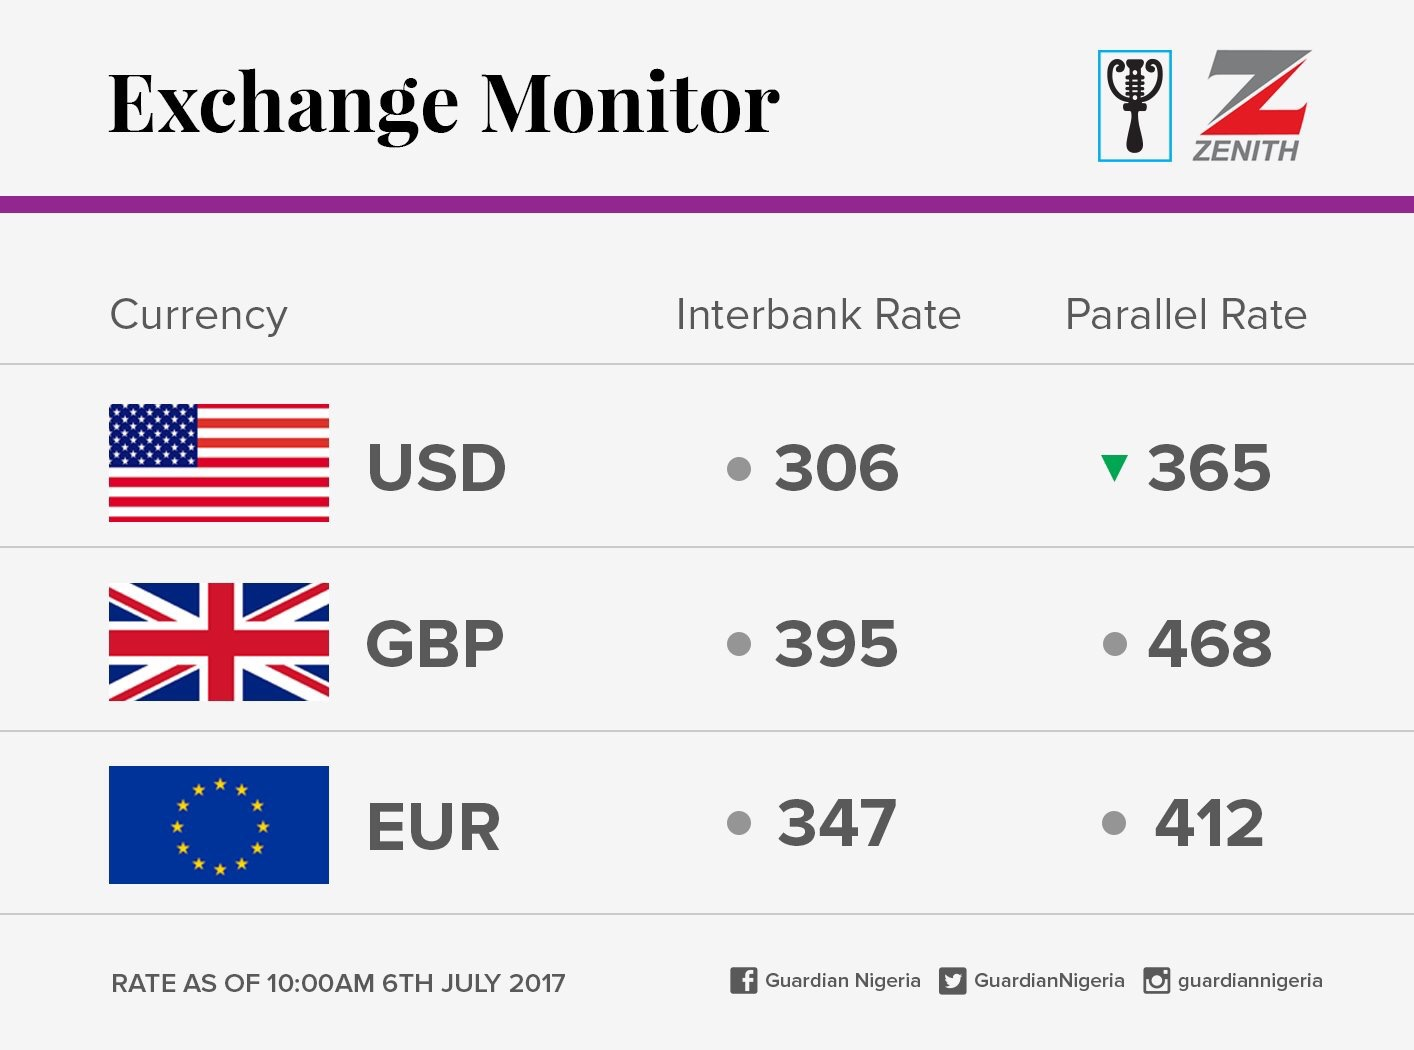 Exchange Rate For 6th July 2017